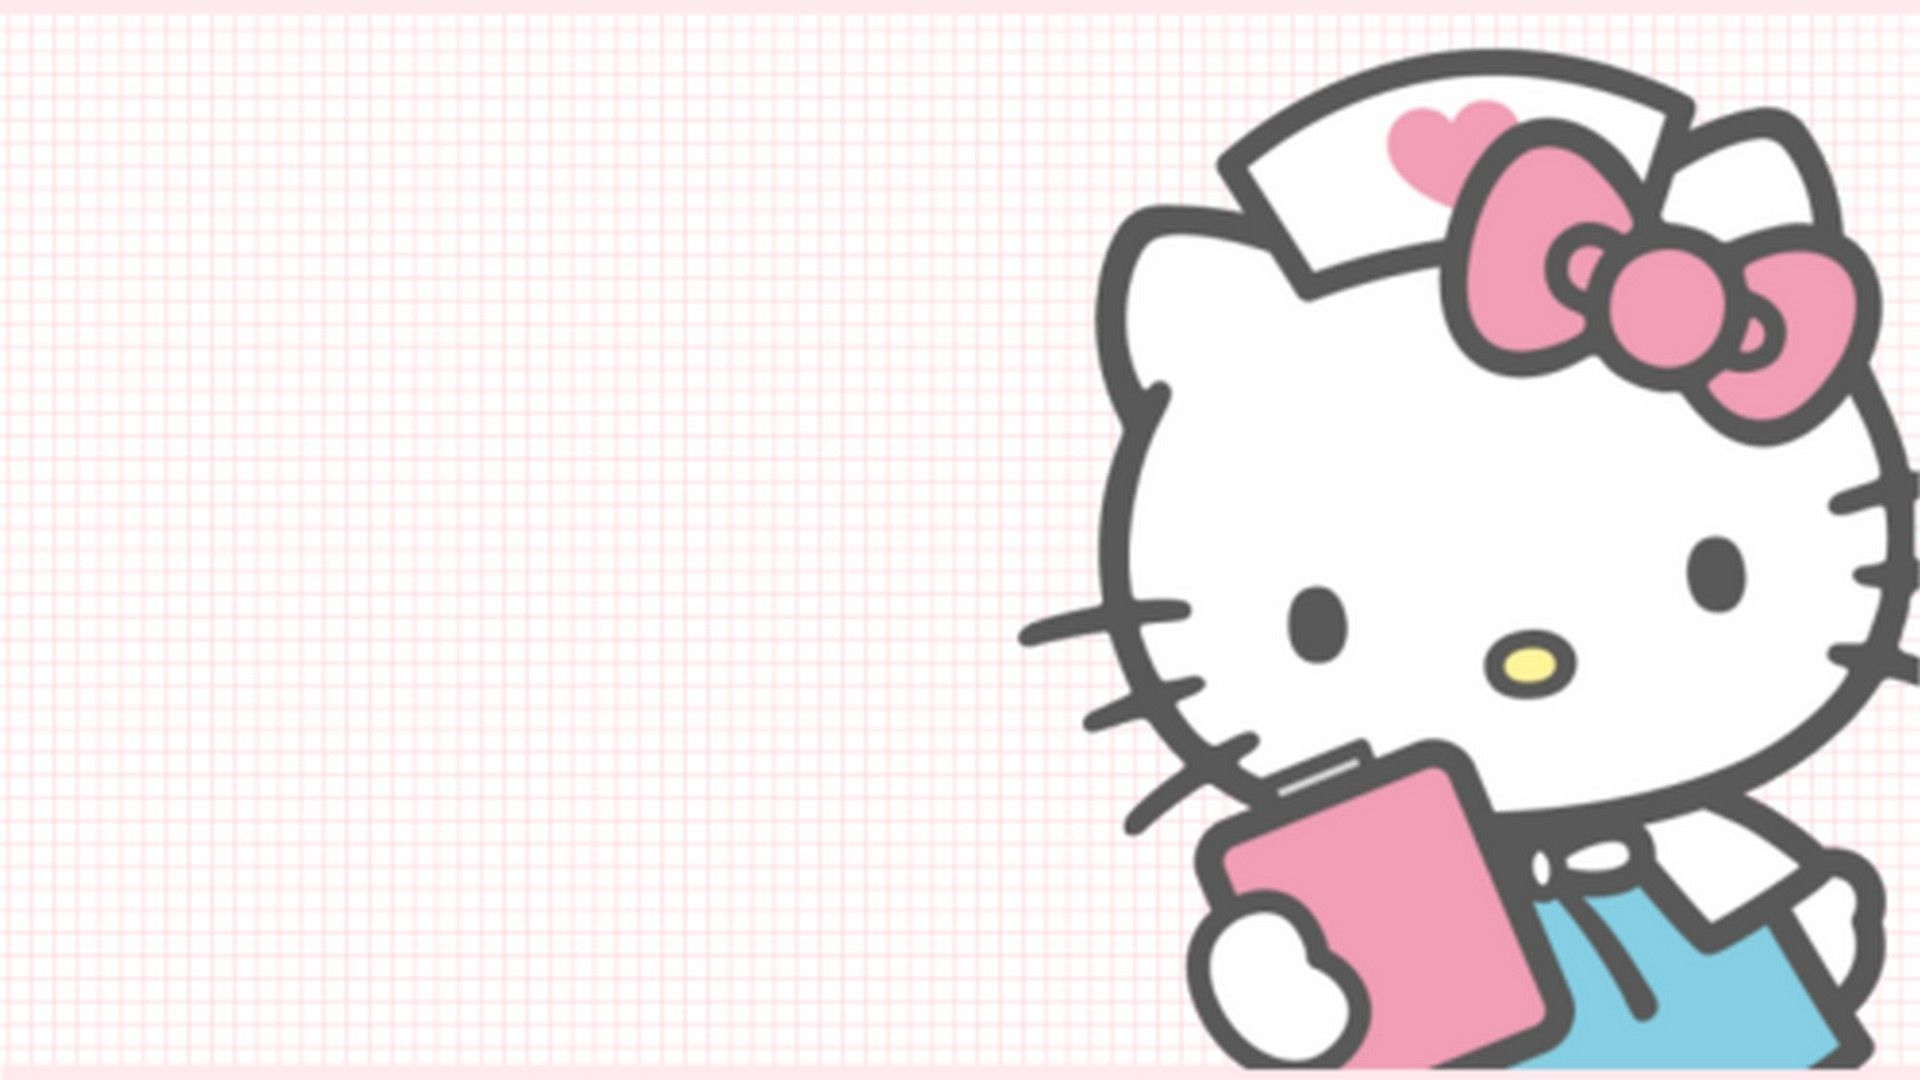 Tumblr Hello Kitty Desktop Wallpapers Top Free Tumblr Inside Hello Kitty Wallpap Trend En 2020 Hello Kitty Cosas De Hello Kitty Fondos De Hello Kitty